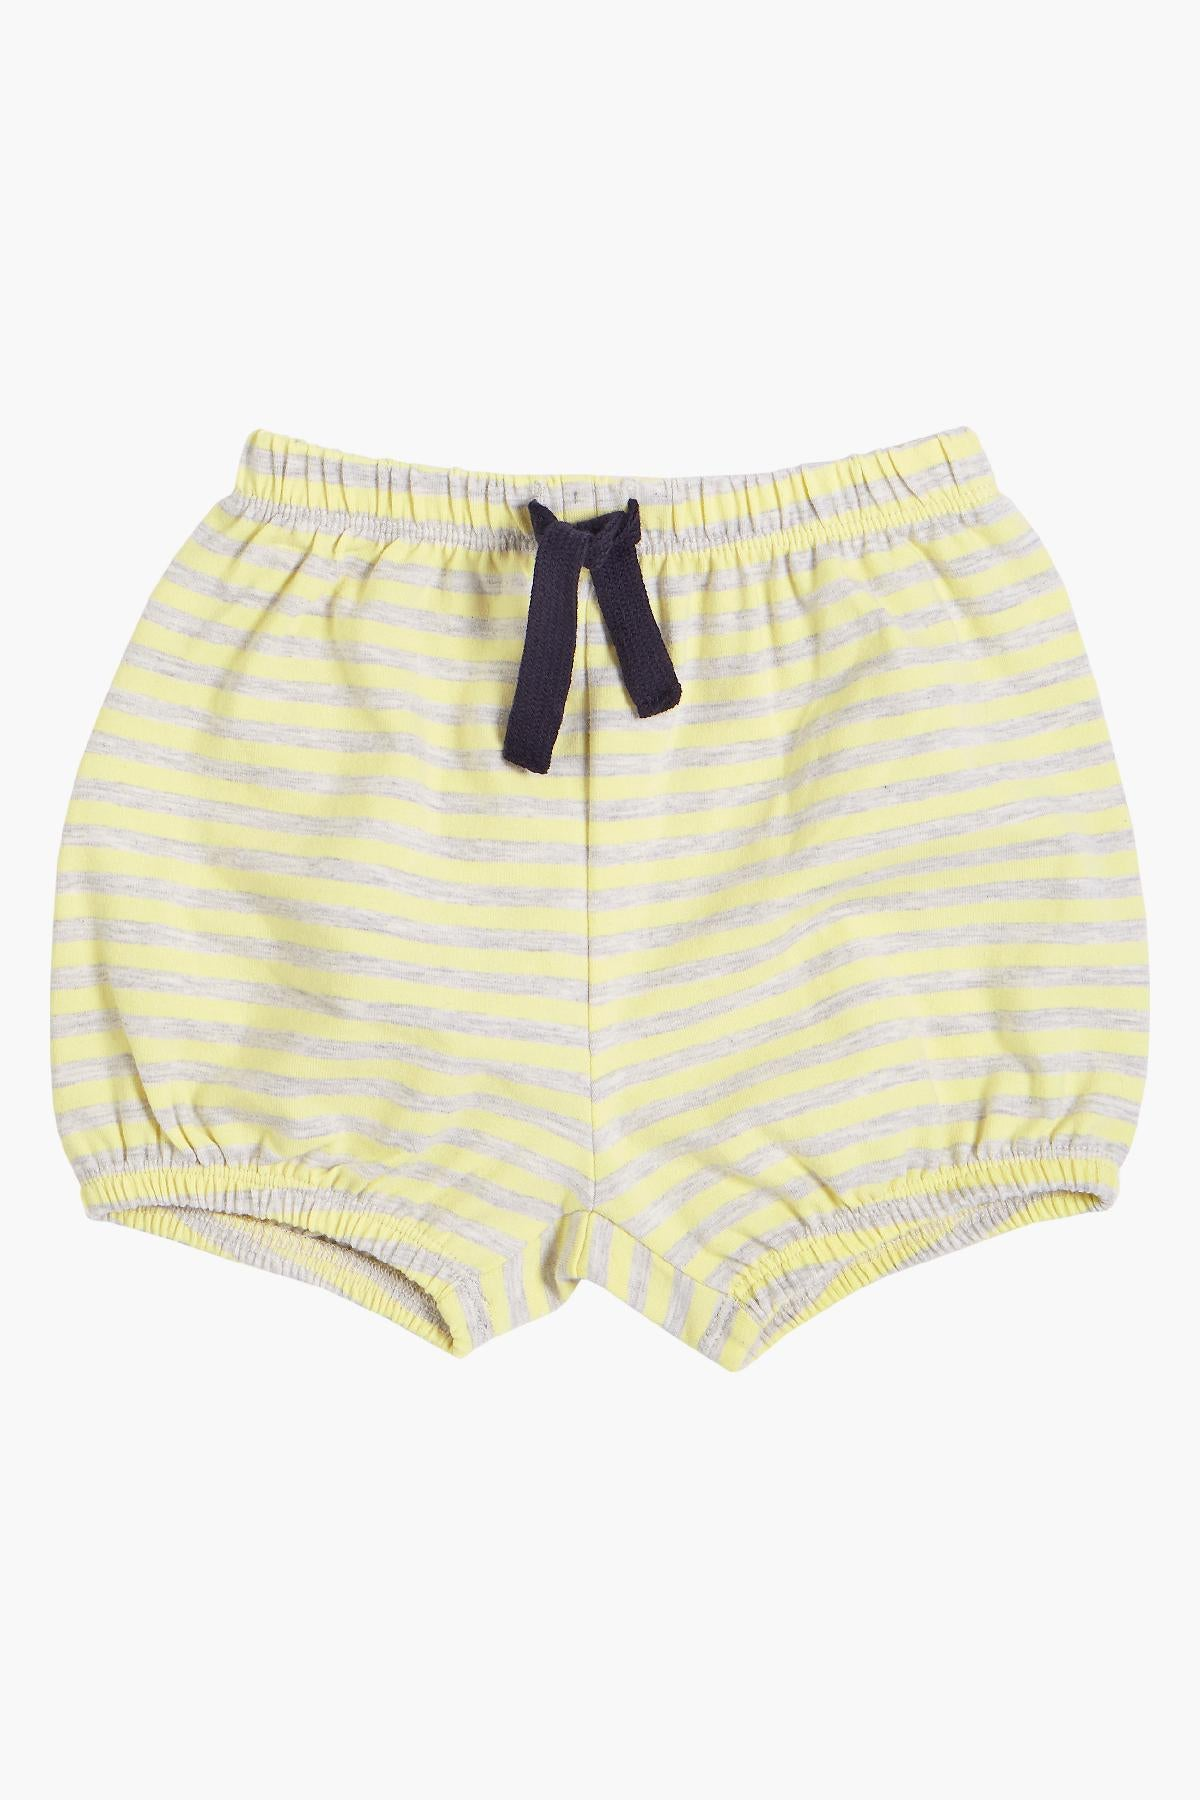 Miles Baby Striped Yellow Baby Short